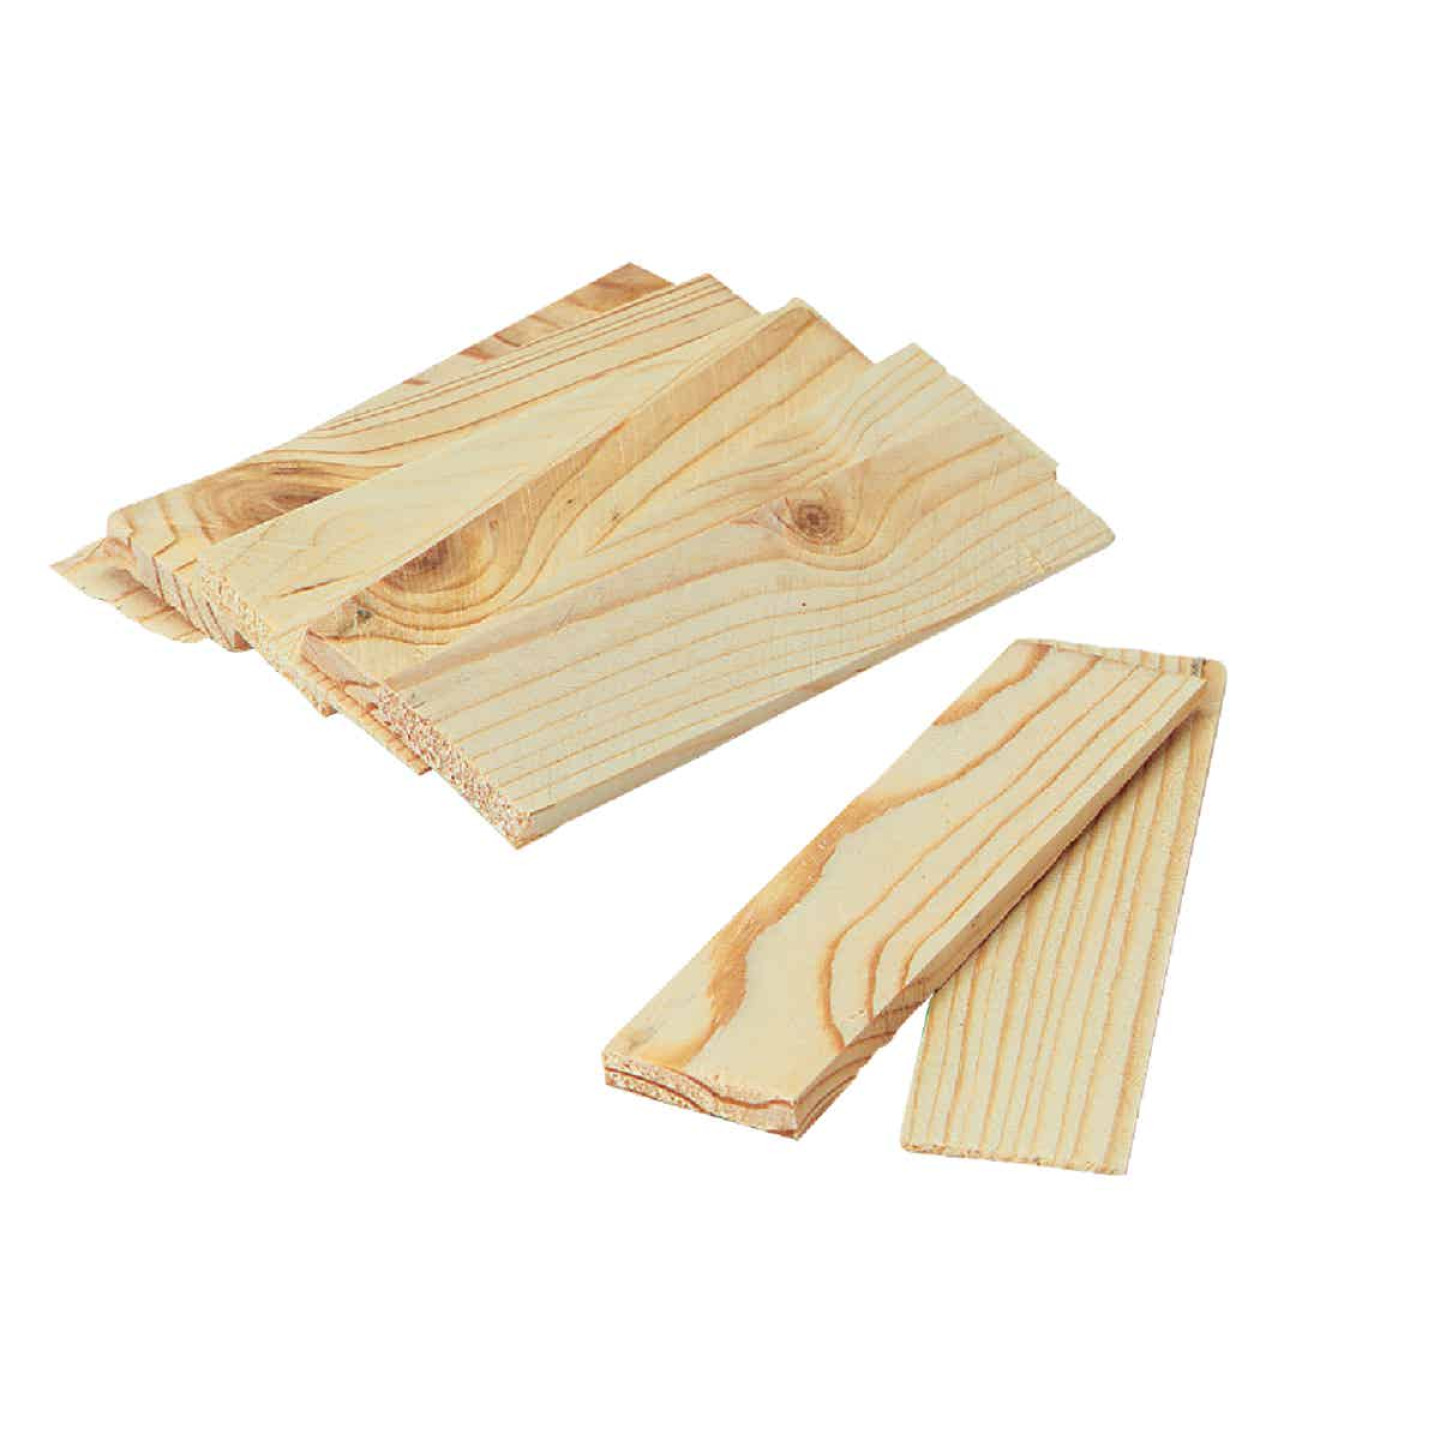 Nelson Wood Shims 6 In. L Wood Shim (9-Count) Image 1